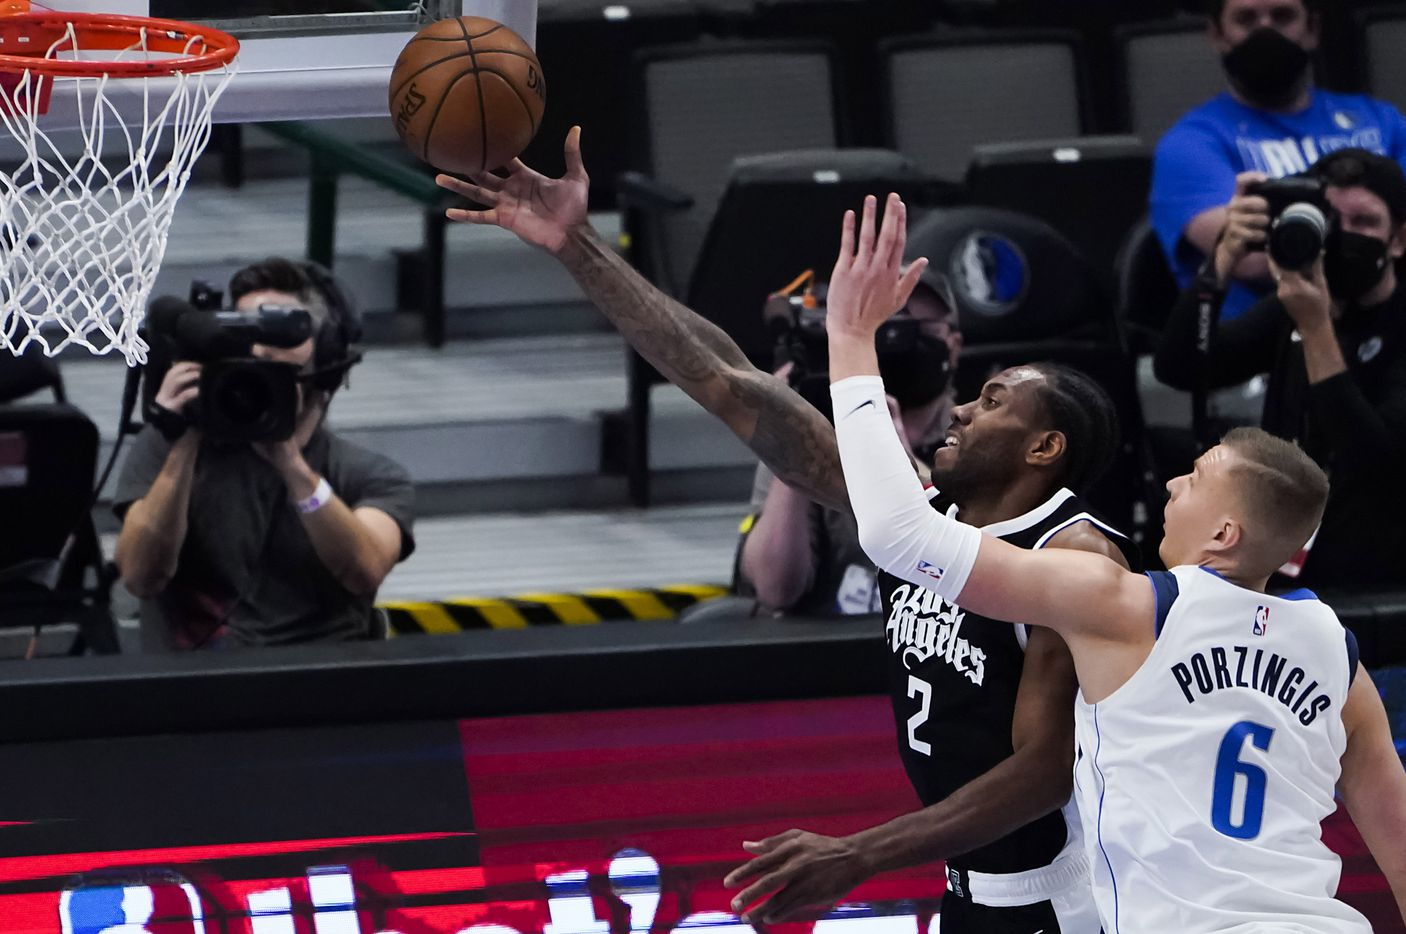 LA Clippers forward Kawhi Leonard (2) scores past Dallas Mavericks center Kristaps Porzingis (6) during the first quarter of an NBA playoff basketball game at American Airlines Center on Sunday, May 30, 2021, in Dallas.